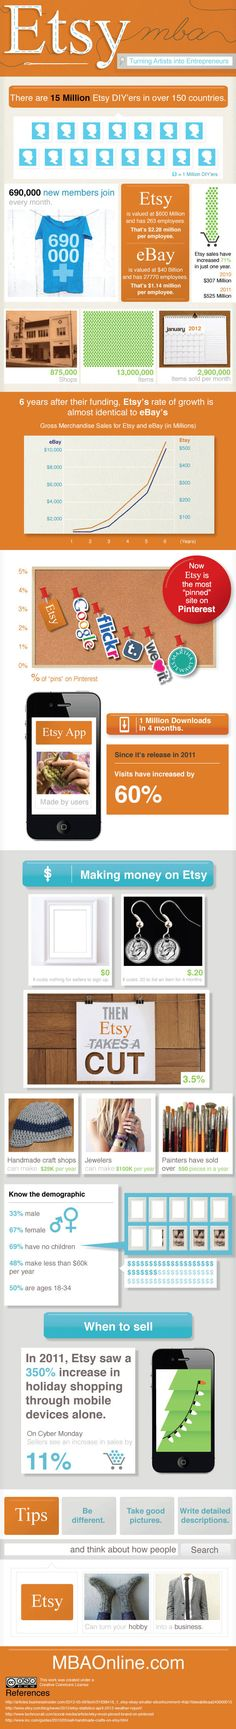 Etsy's Growth May Surprise You: The Facts & Stats